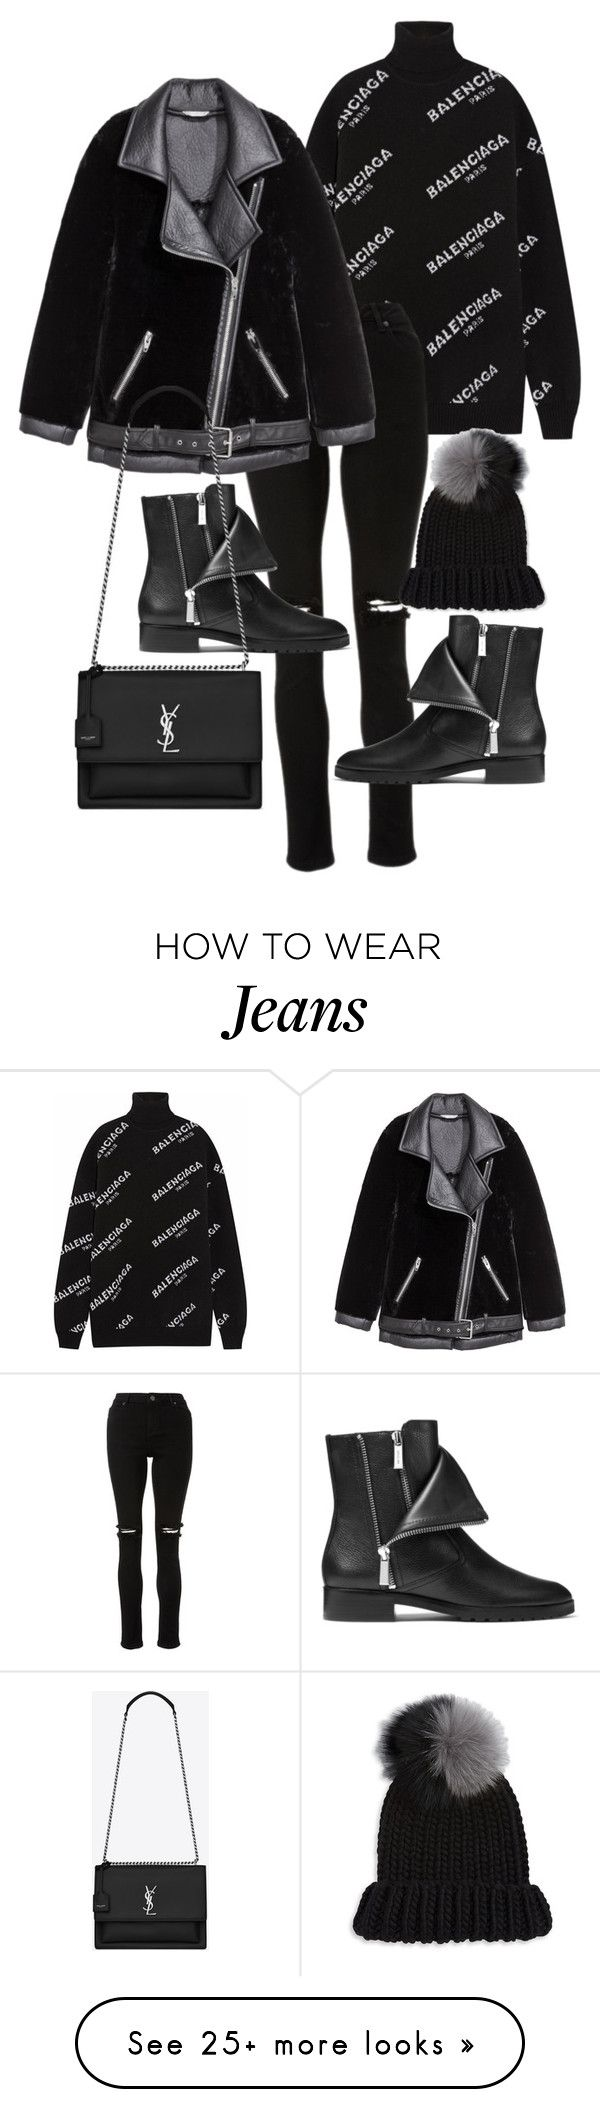 """""""Untitled #22931"""" by florencia95 on Polyvore featuring Balenciaga, Michael Kors, Yves Saint Laurent and Eugenia Kim"""